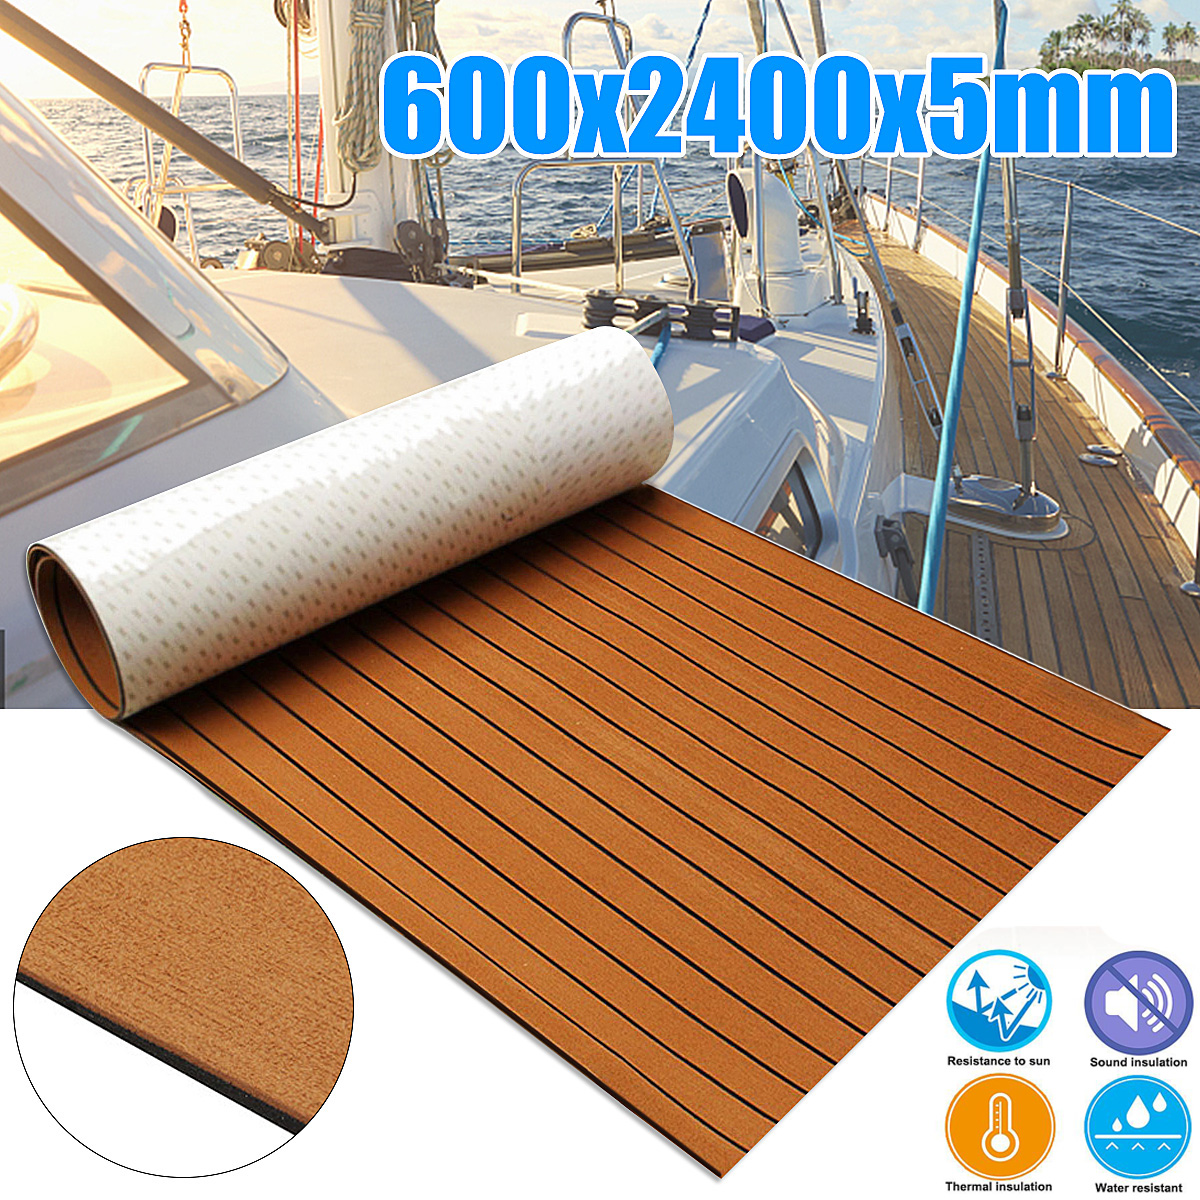 Audew Self-Adhesive 600x2400x5mm Teak EVA Foam Flooring Faux Boat Decking Sheet